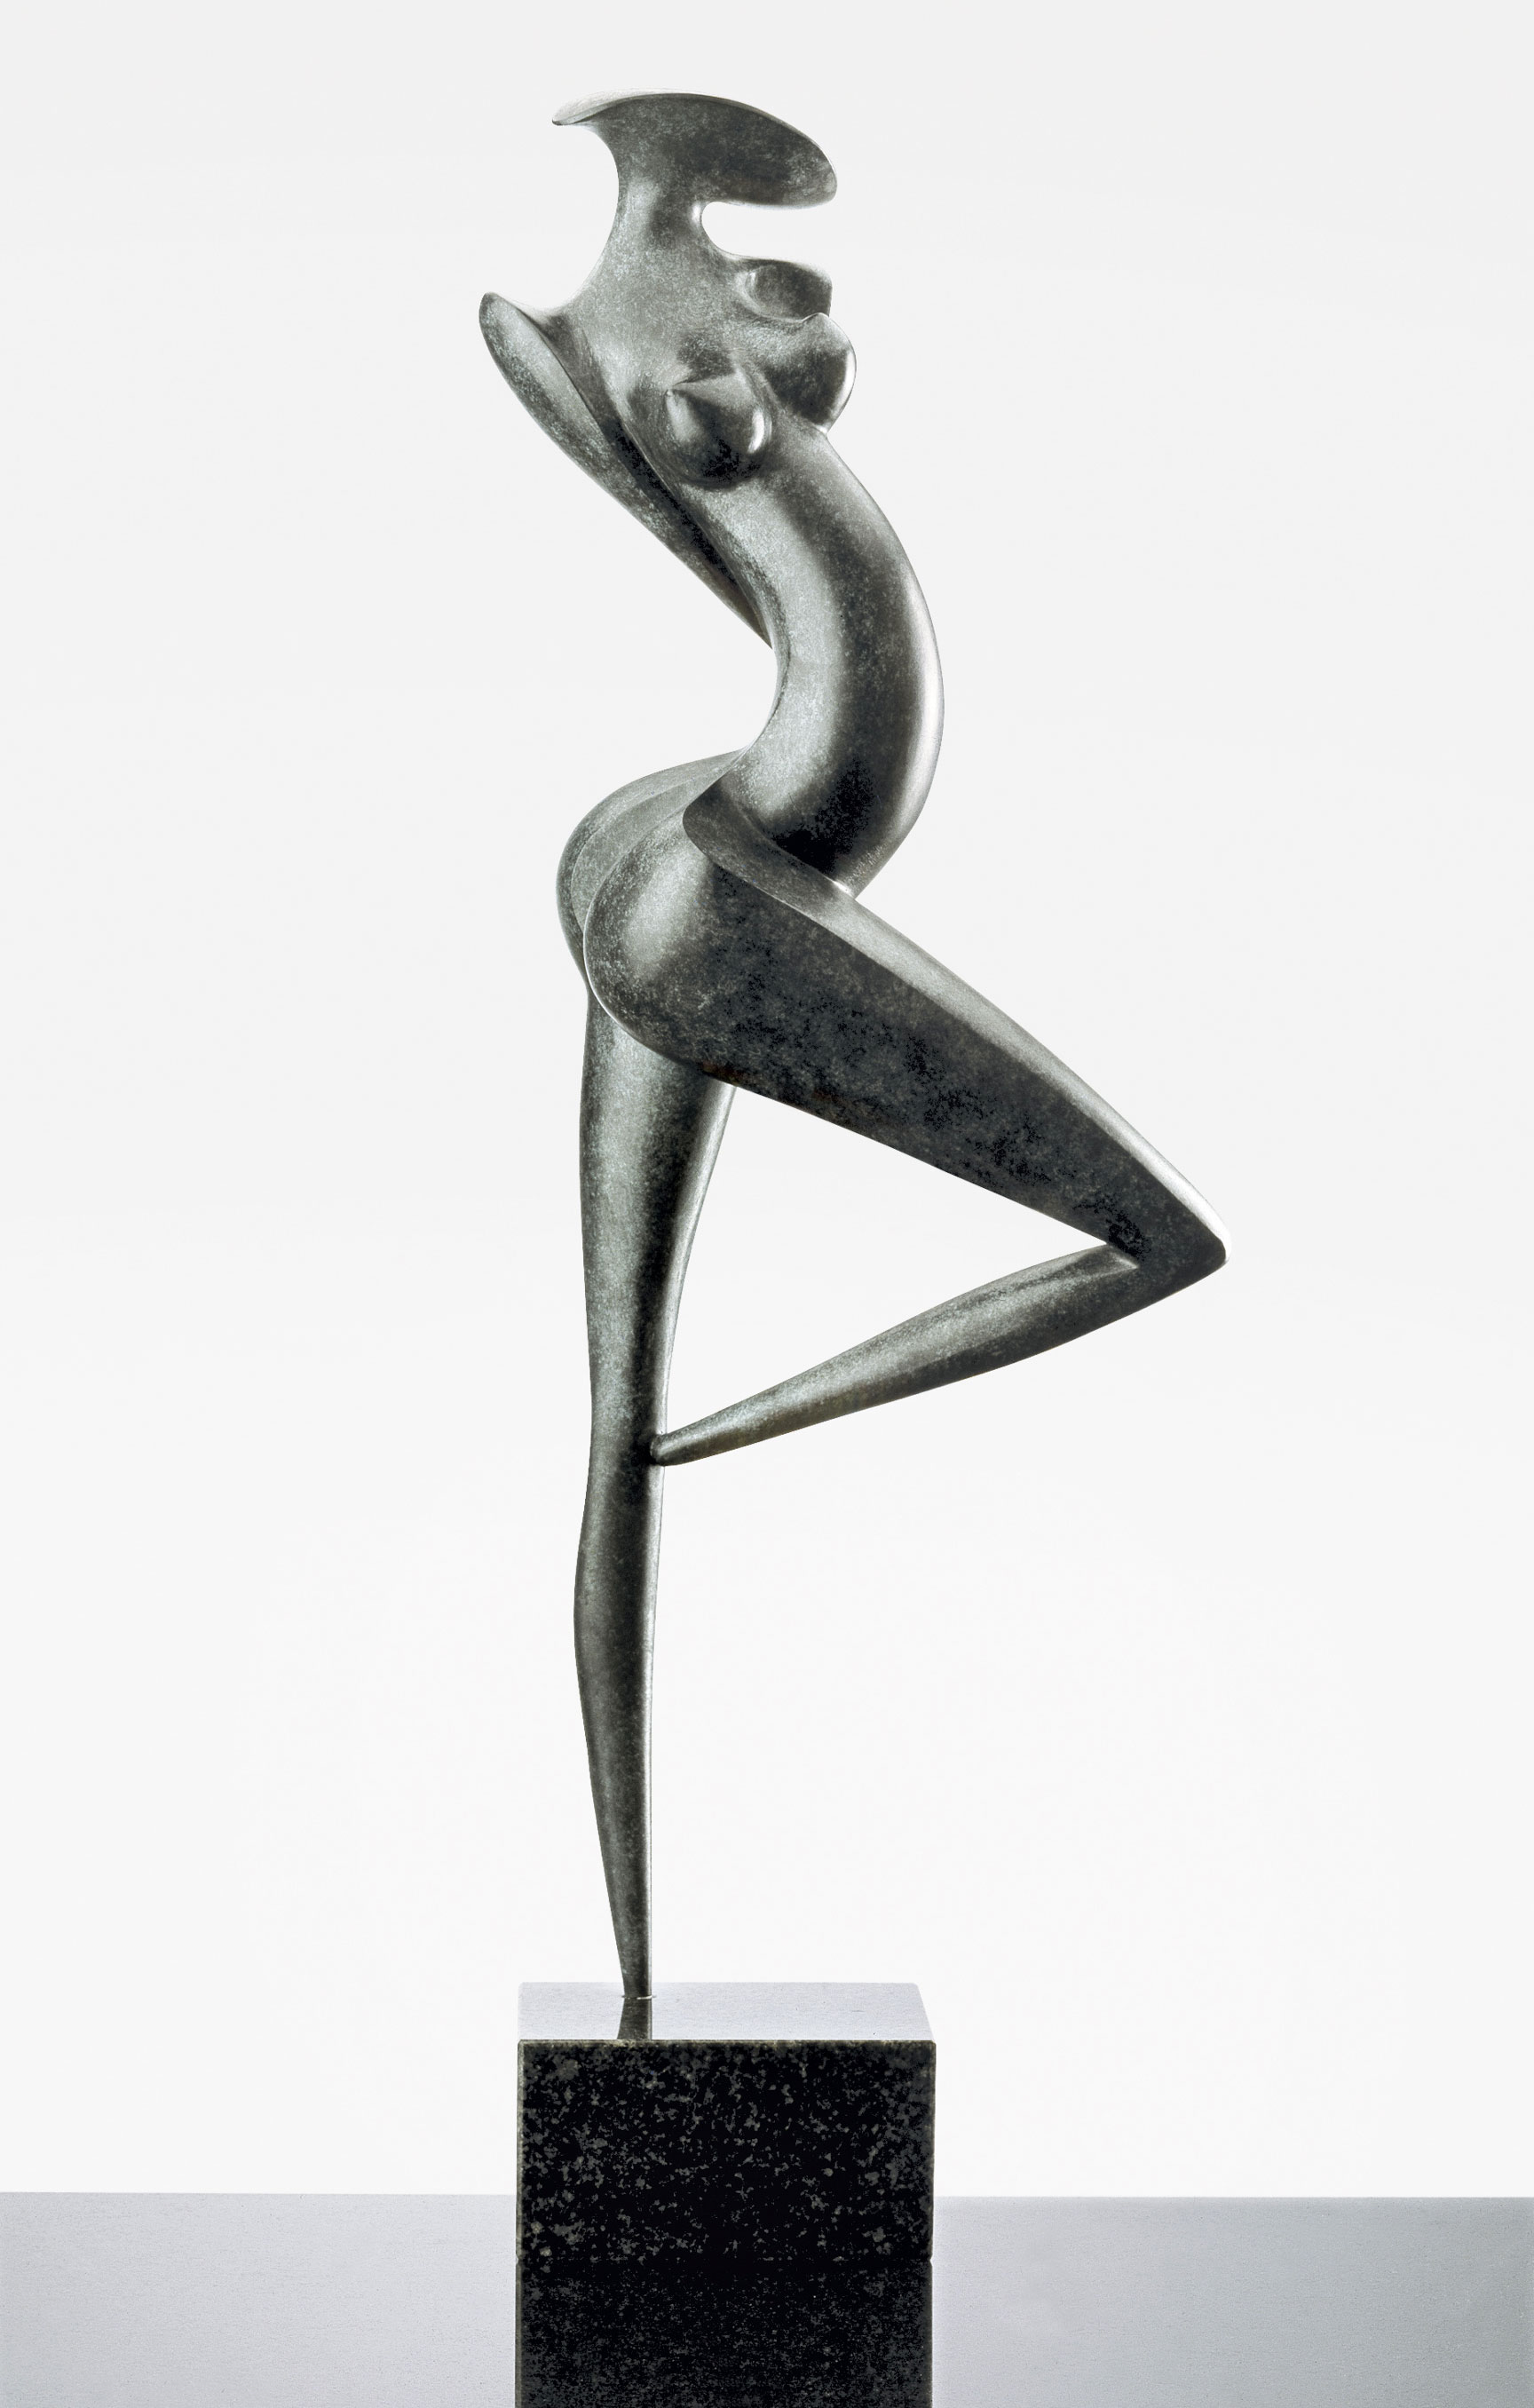 La danseuse sculpture contemporaine marion b rkle marion buerkle sculptor - Sculptures modernes contemporaines ...